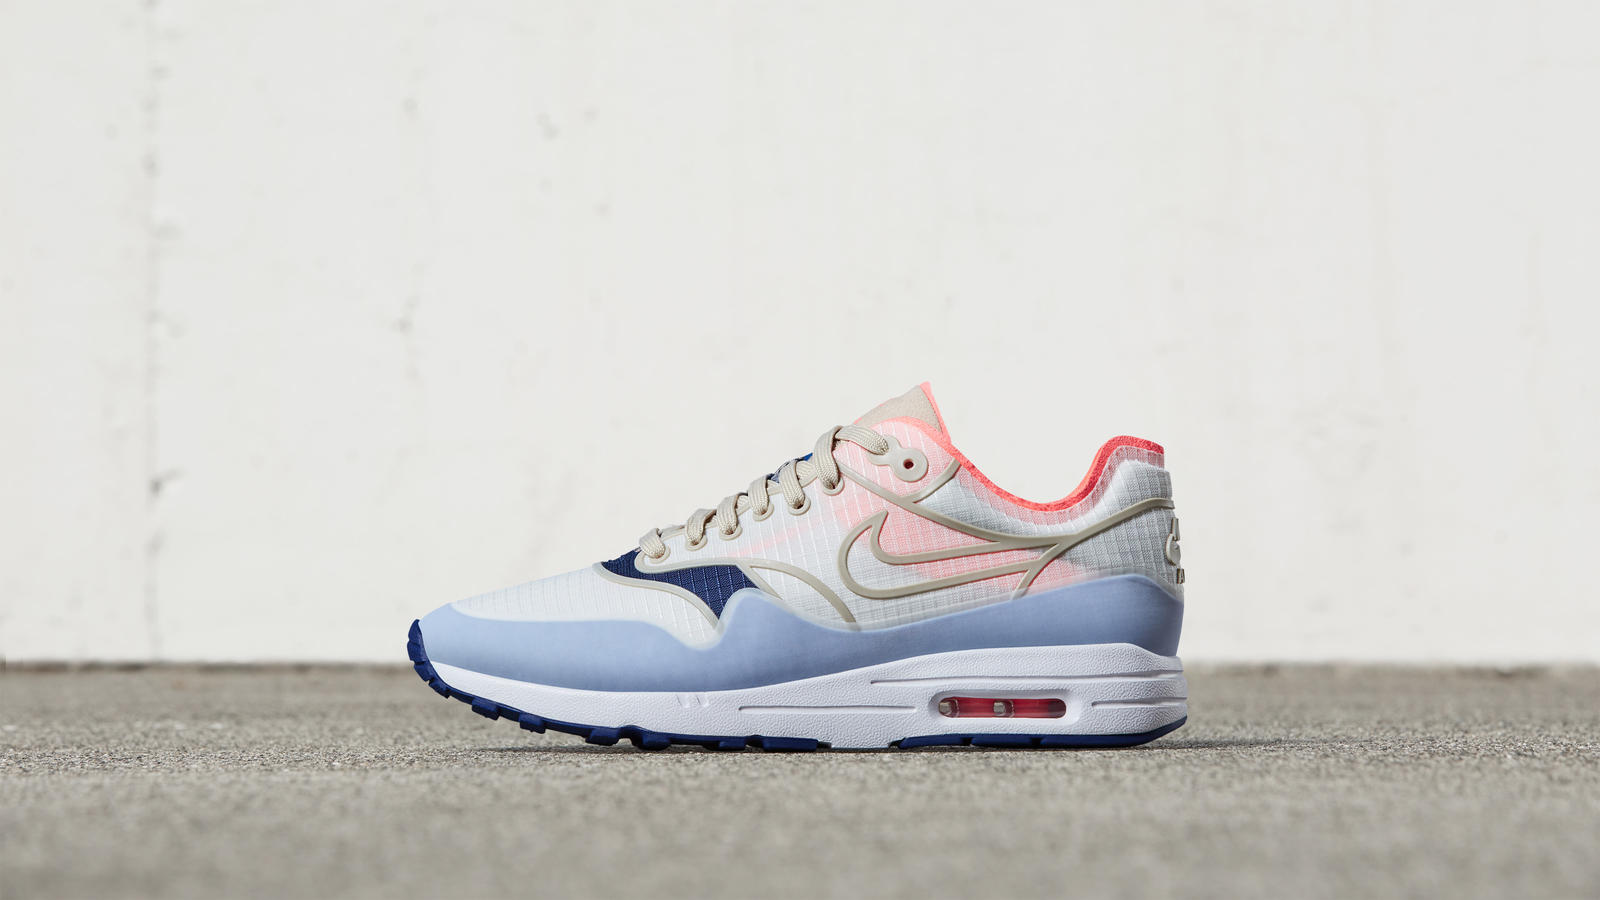 161205 footwear airmax 0057 hd 1600